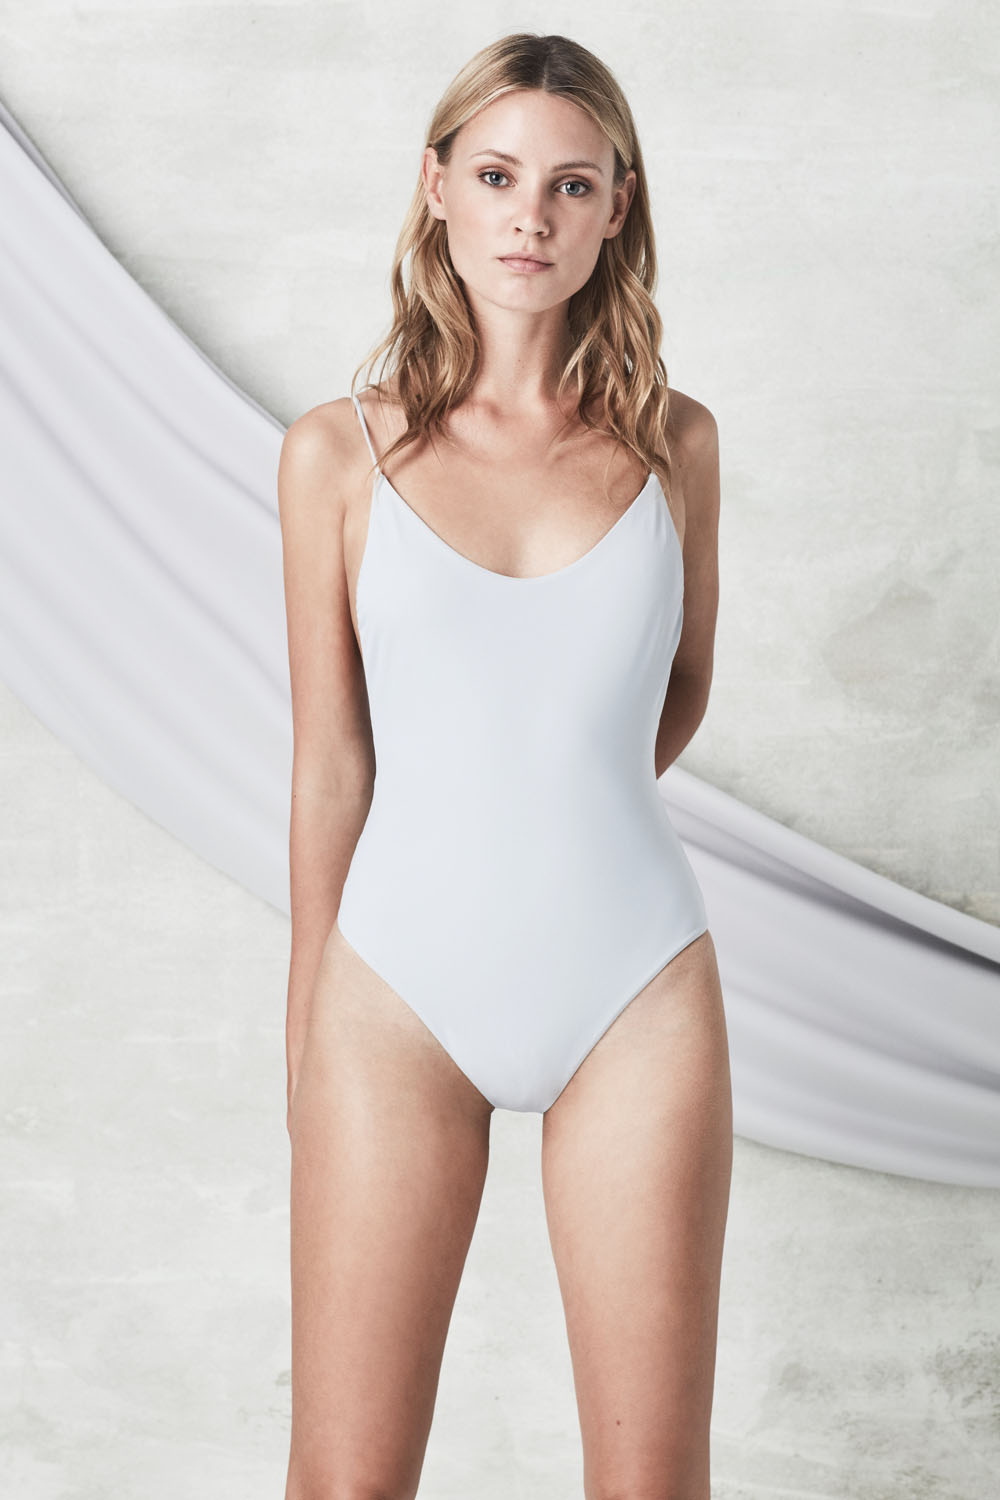 ALONA Mist onepiece, NOW_THEN eco swimwear / bañador ecológico